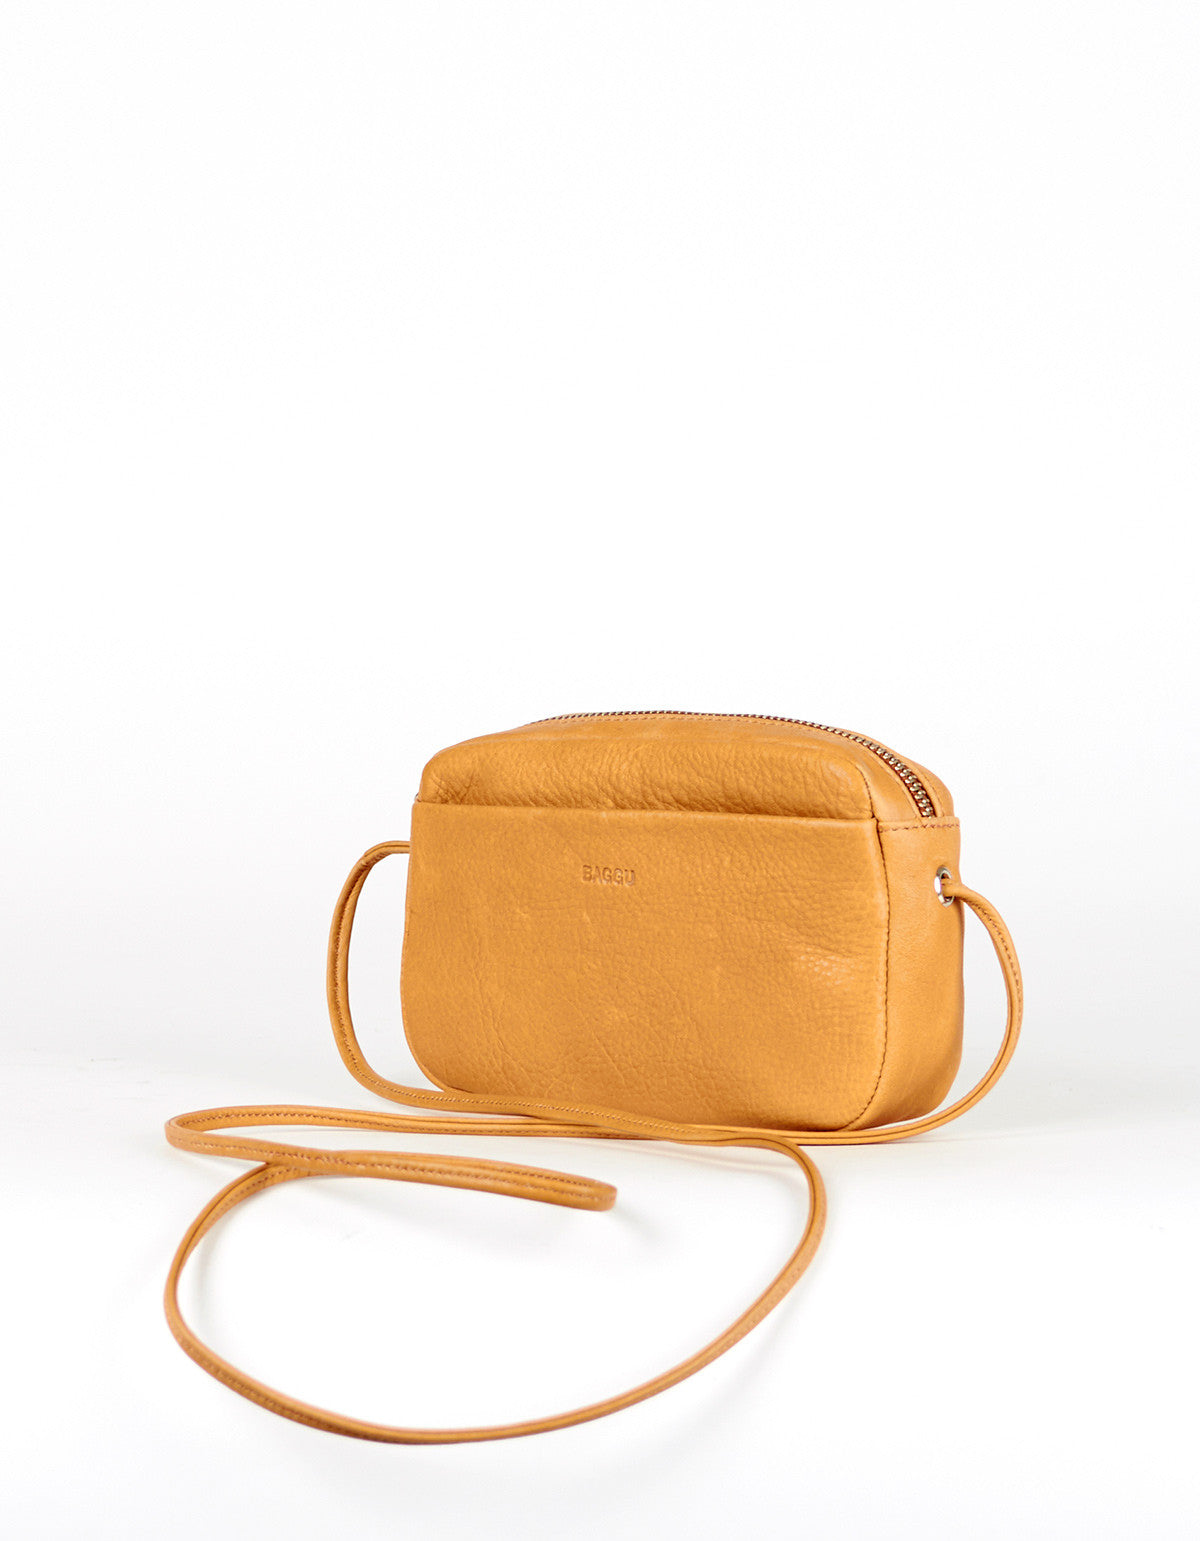 Baggu Mini Purse Saddle - Still Life - 3